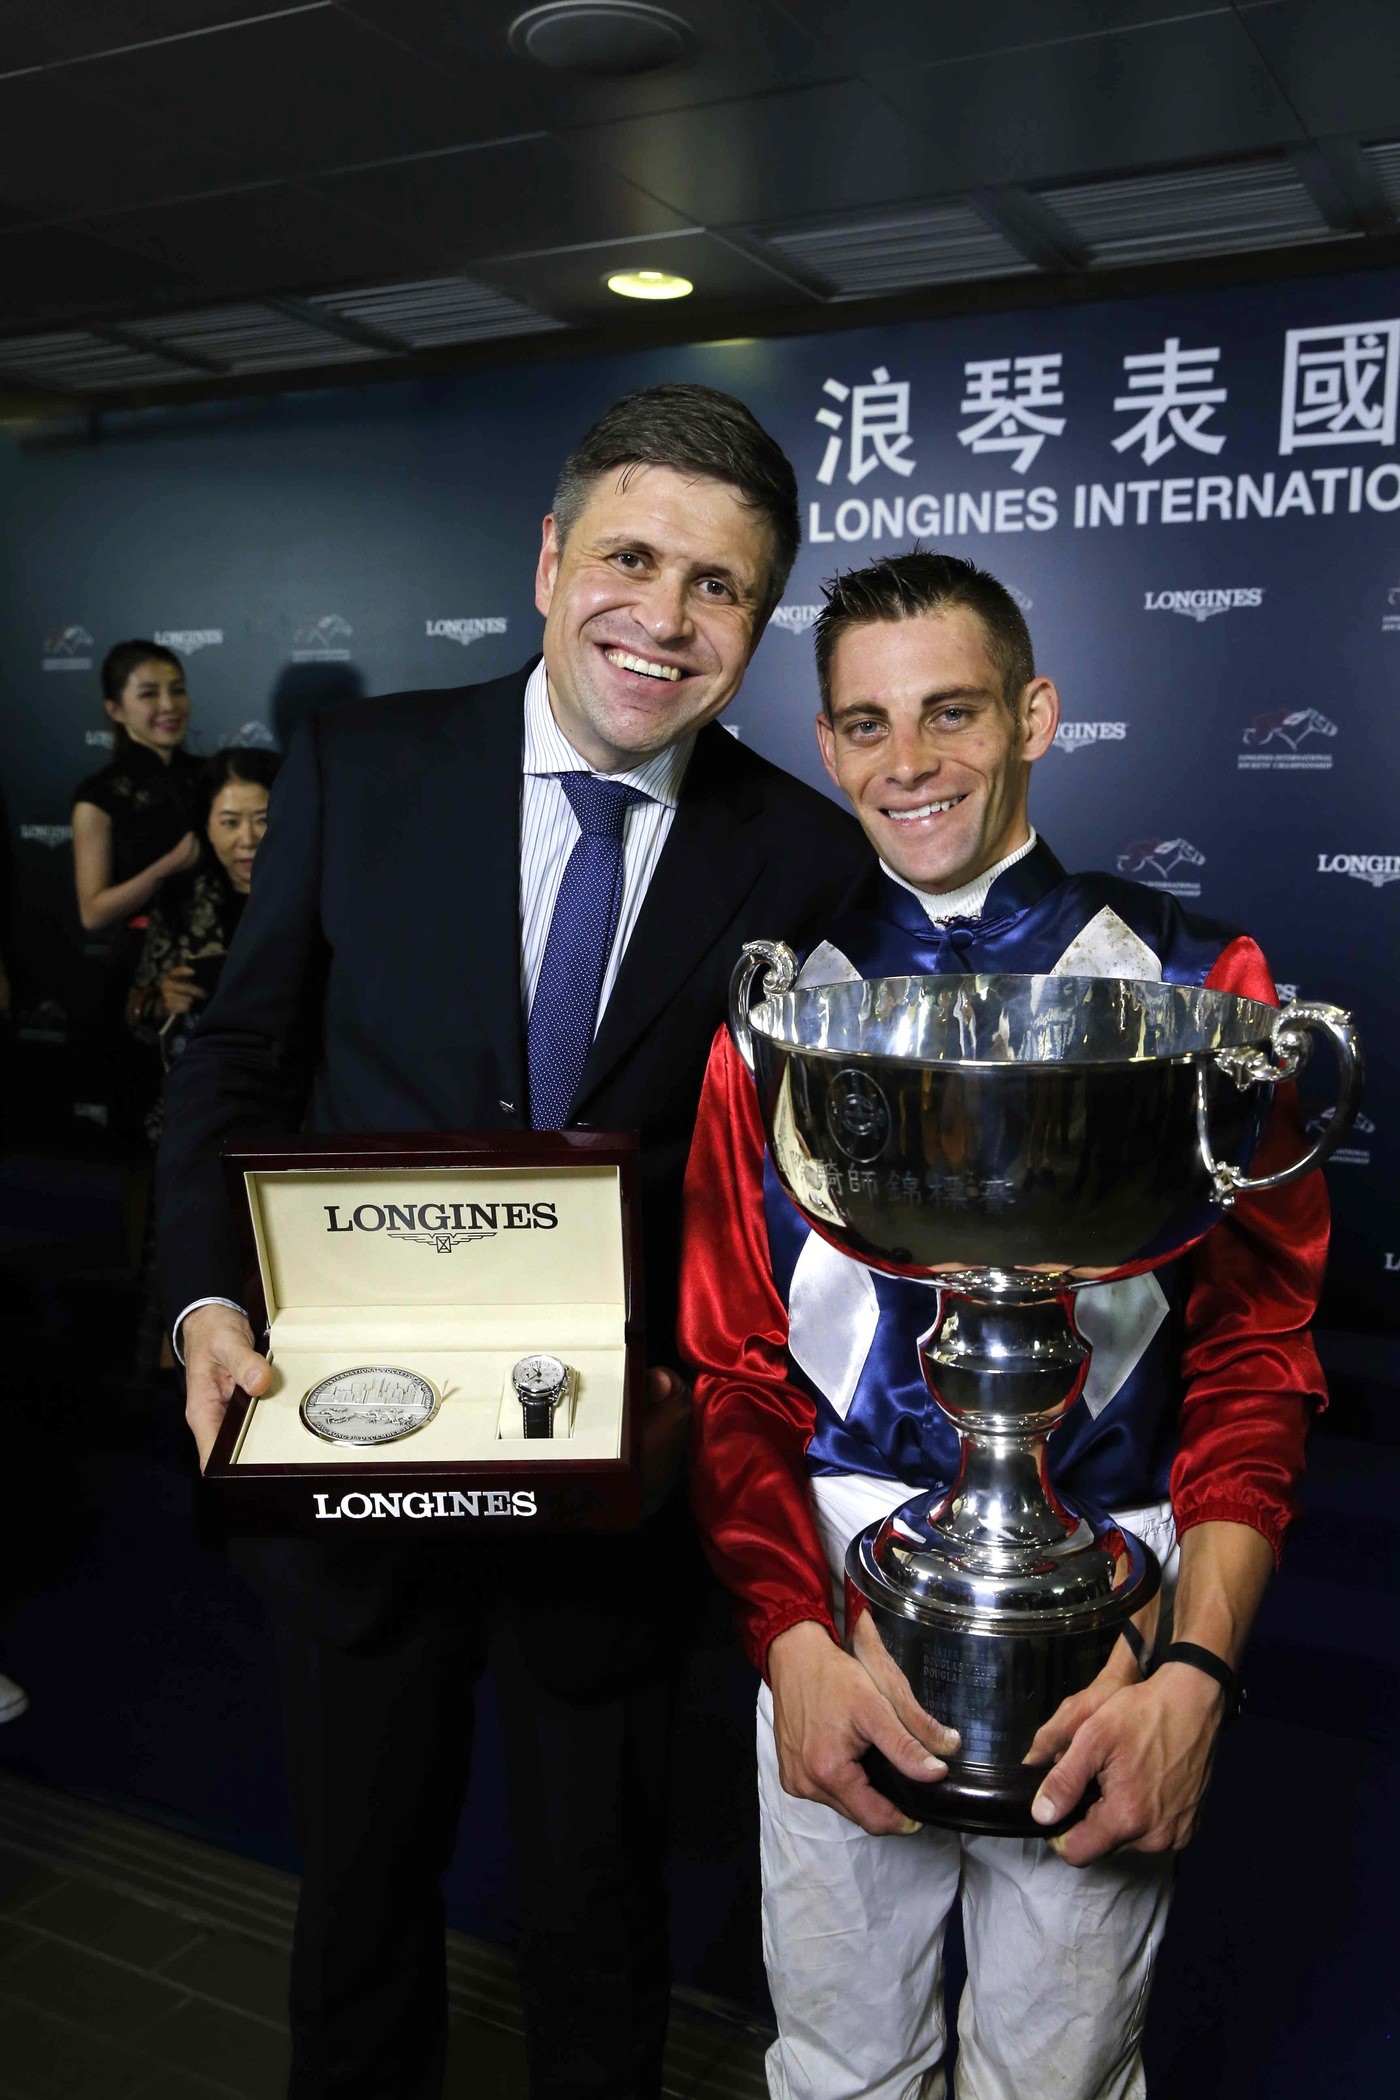 Longines Flat Racing Event: The Longines International Jockeys' Championship 2015: The battle of the world's best jockeys 8